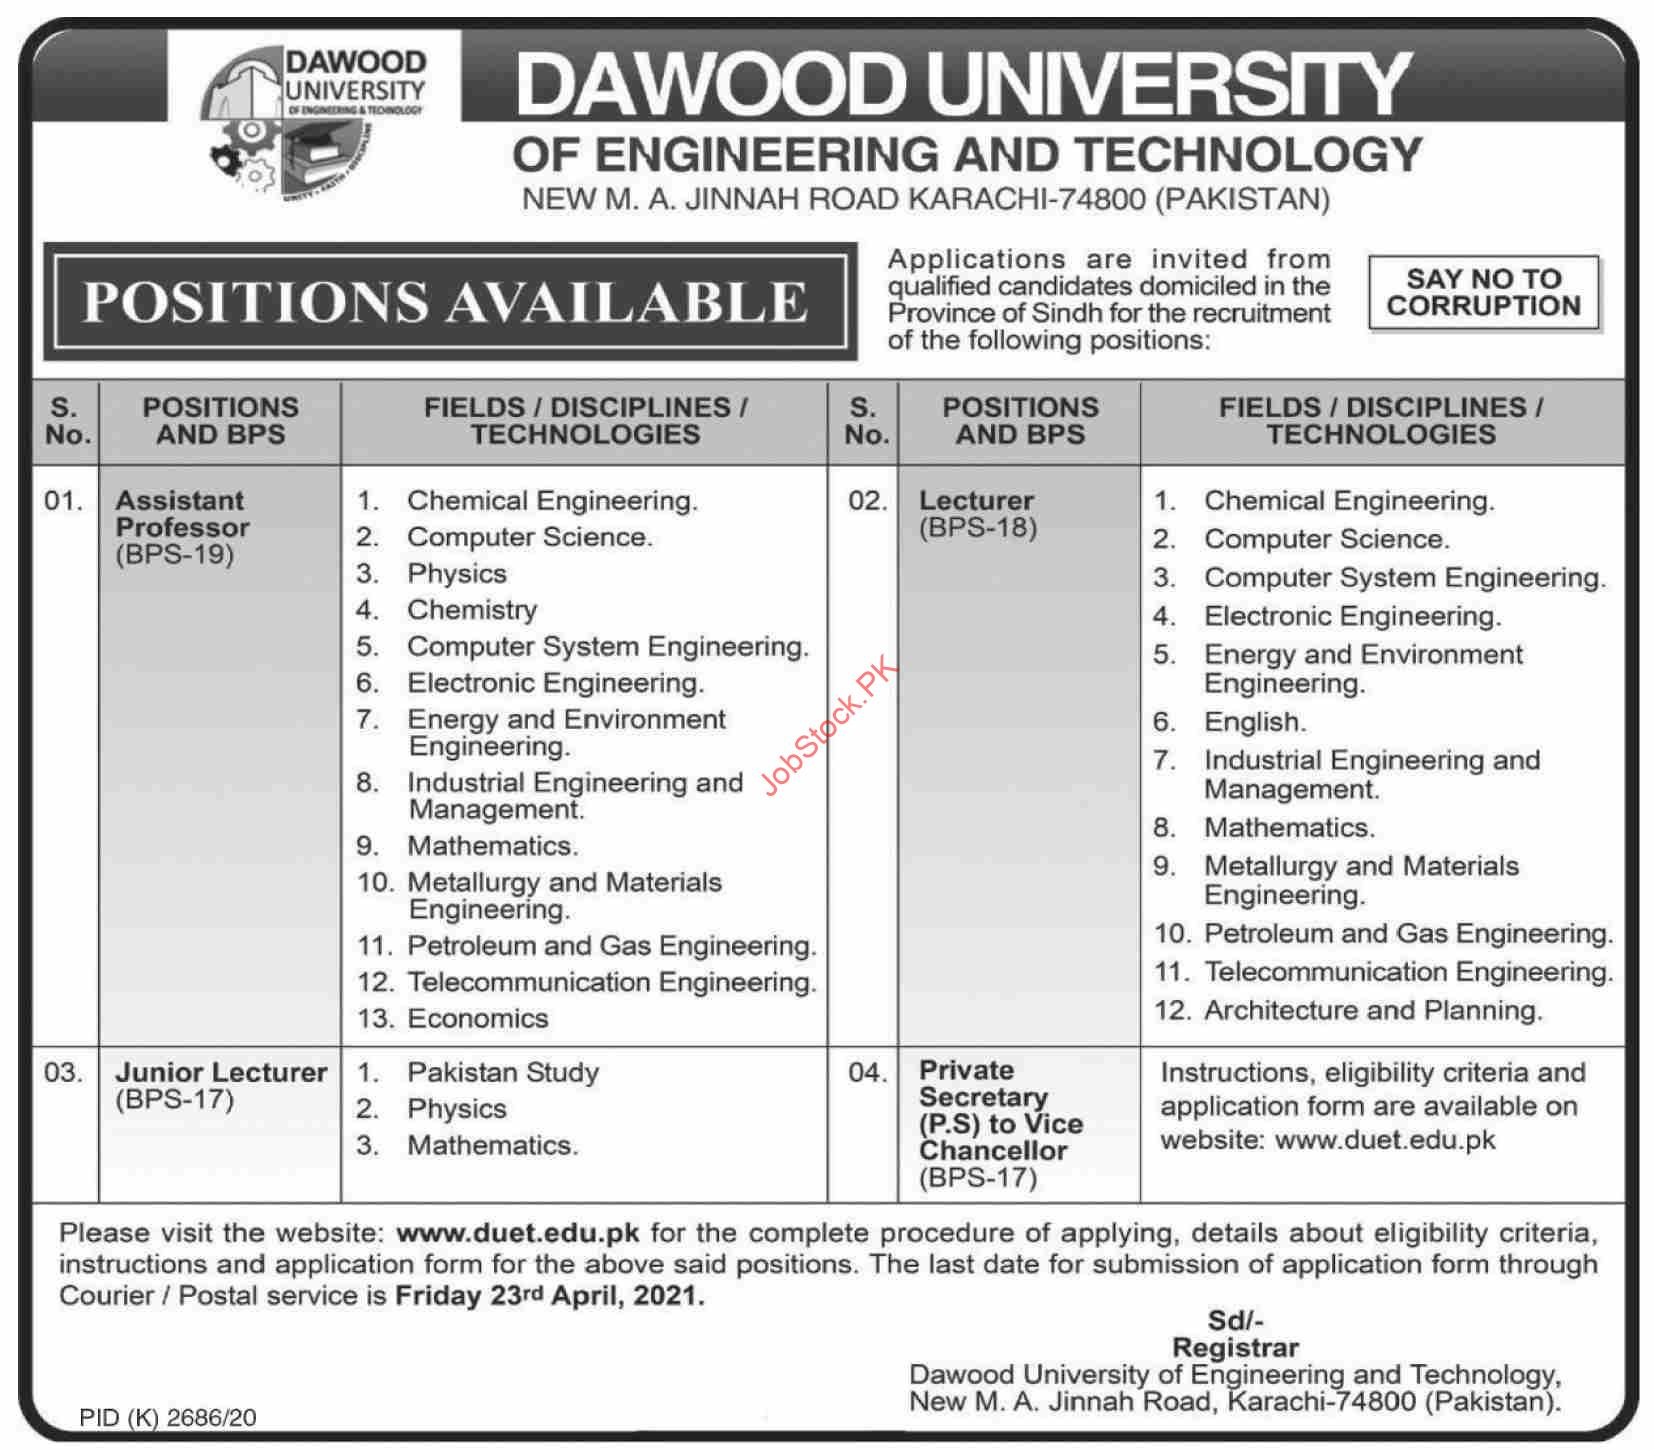 Dawood University Of Engineering & Technology Karachi Jobs 2021